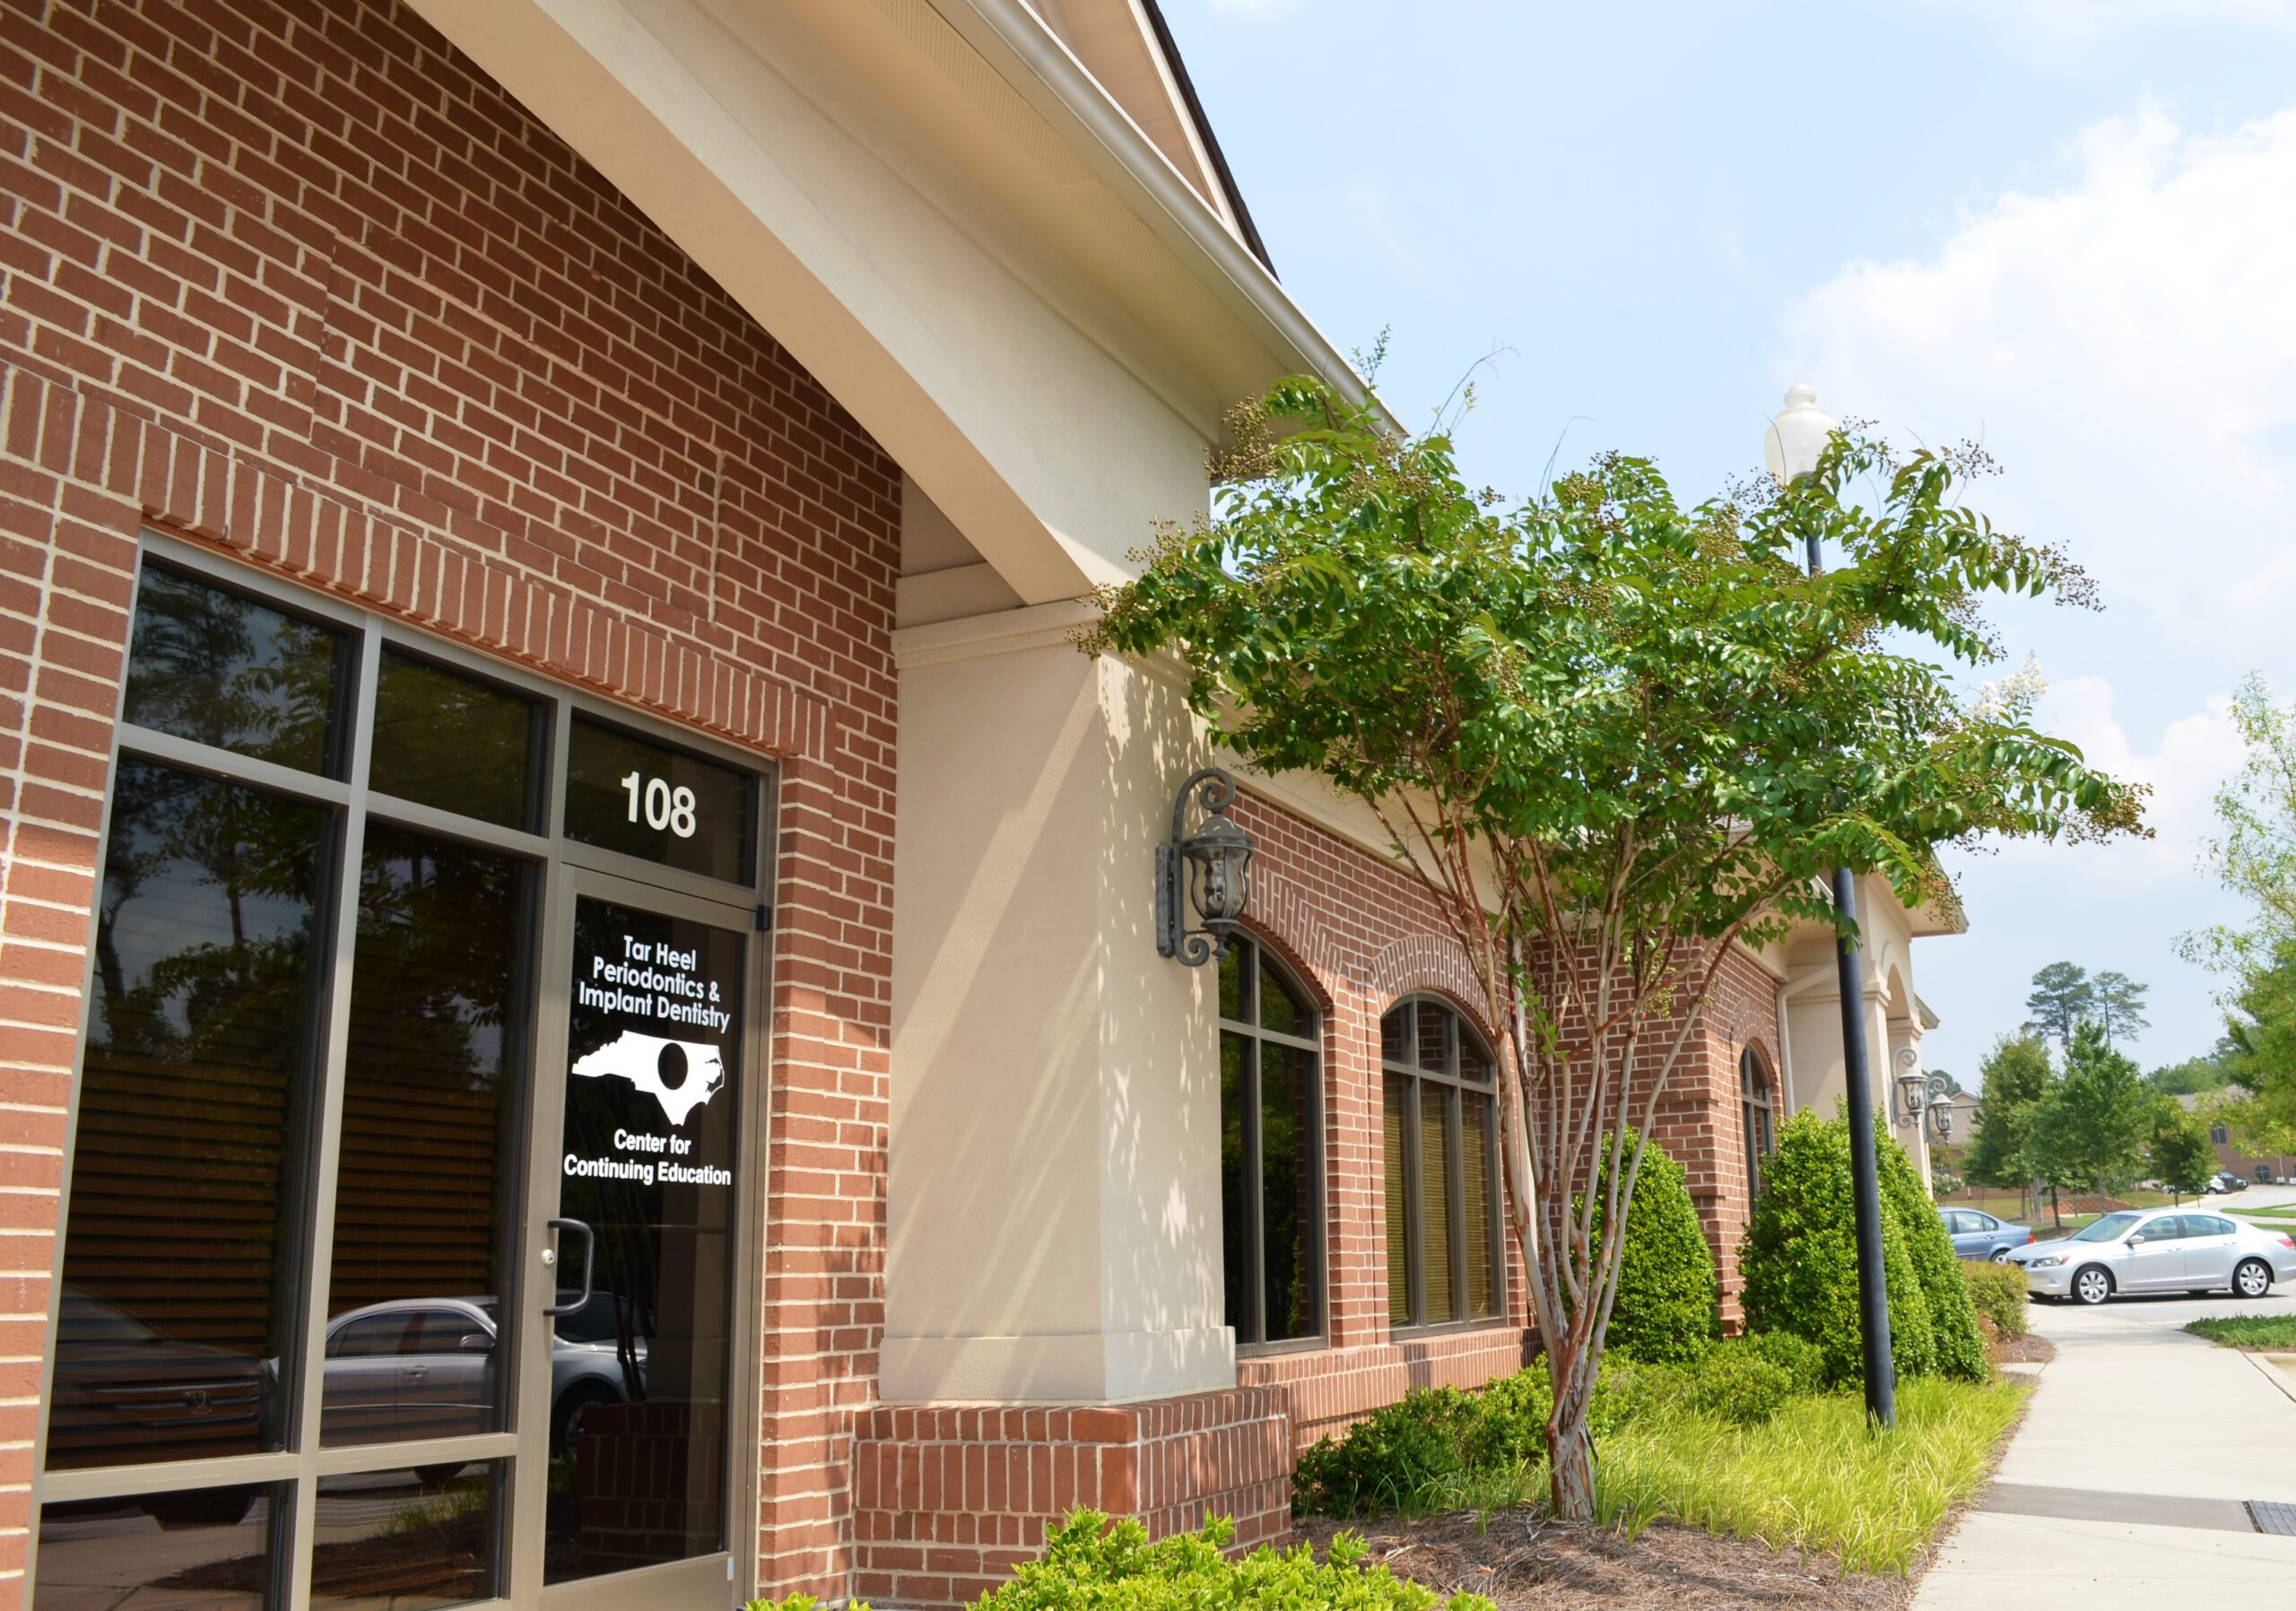 Periodontist in Raleigh